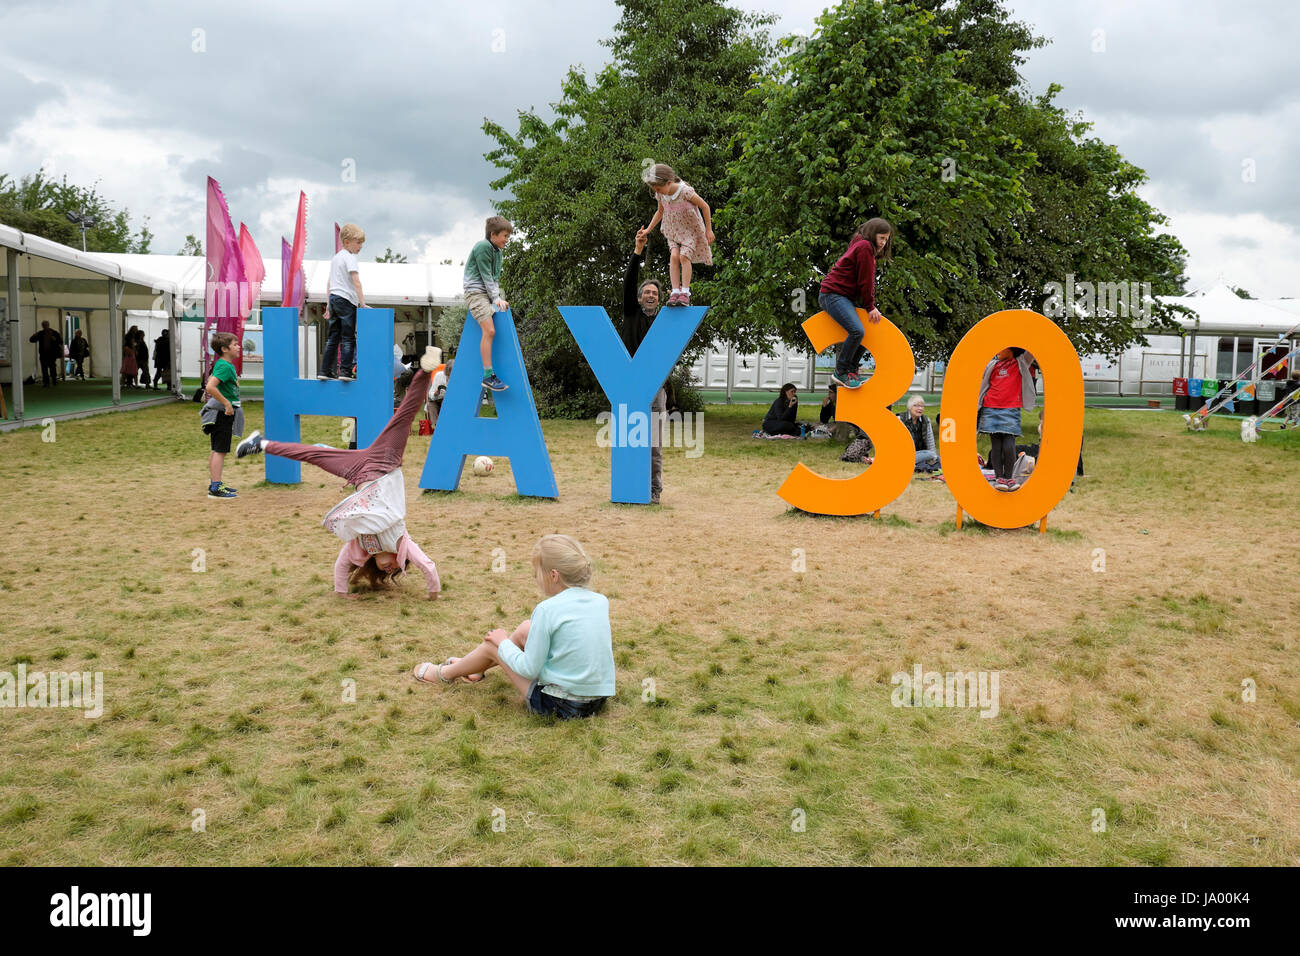 Kids playing outside climbing on the Hay 30 sign celebrating the 30th year of the Hay Festival, Hay-on-Wye, Wales - Stock Image